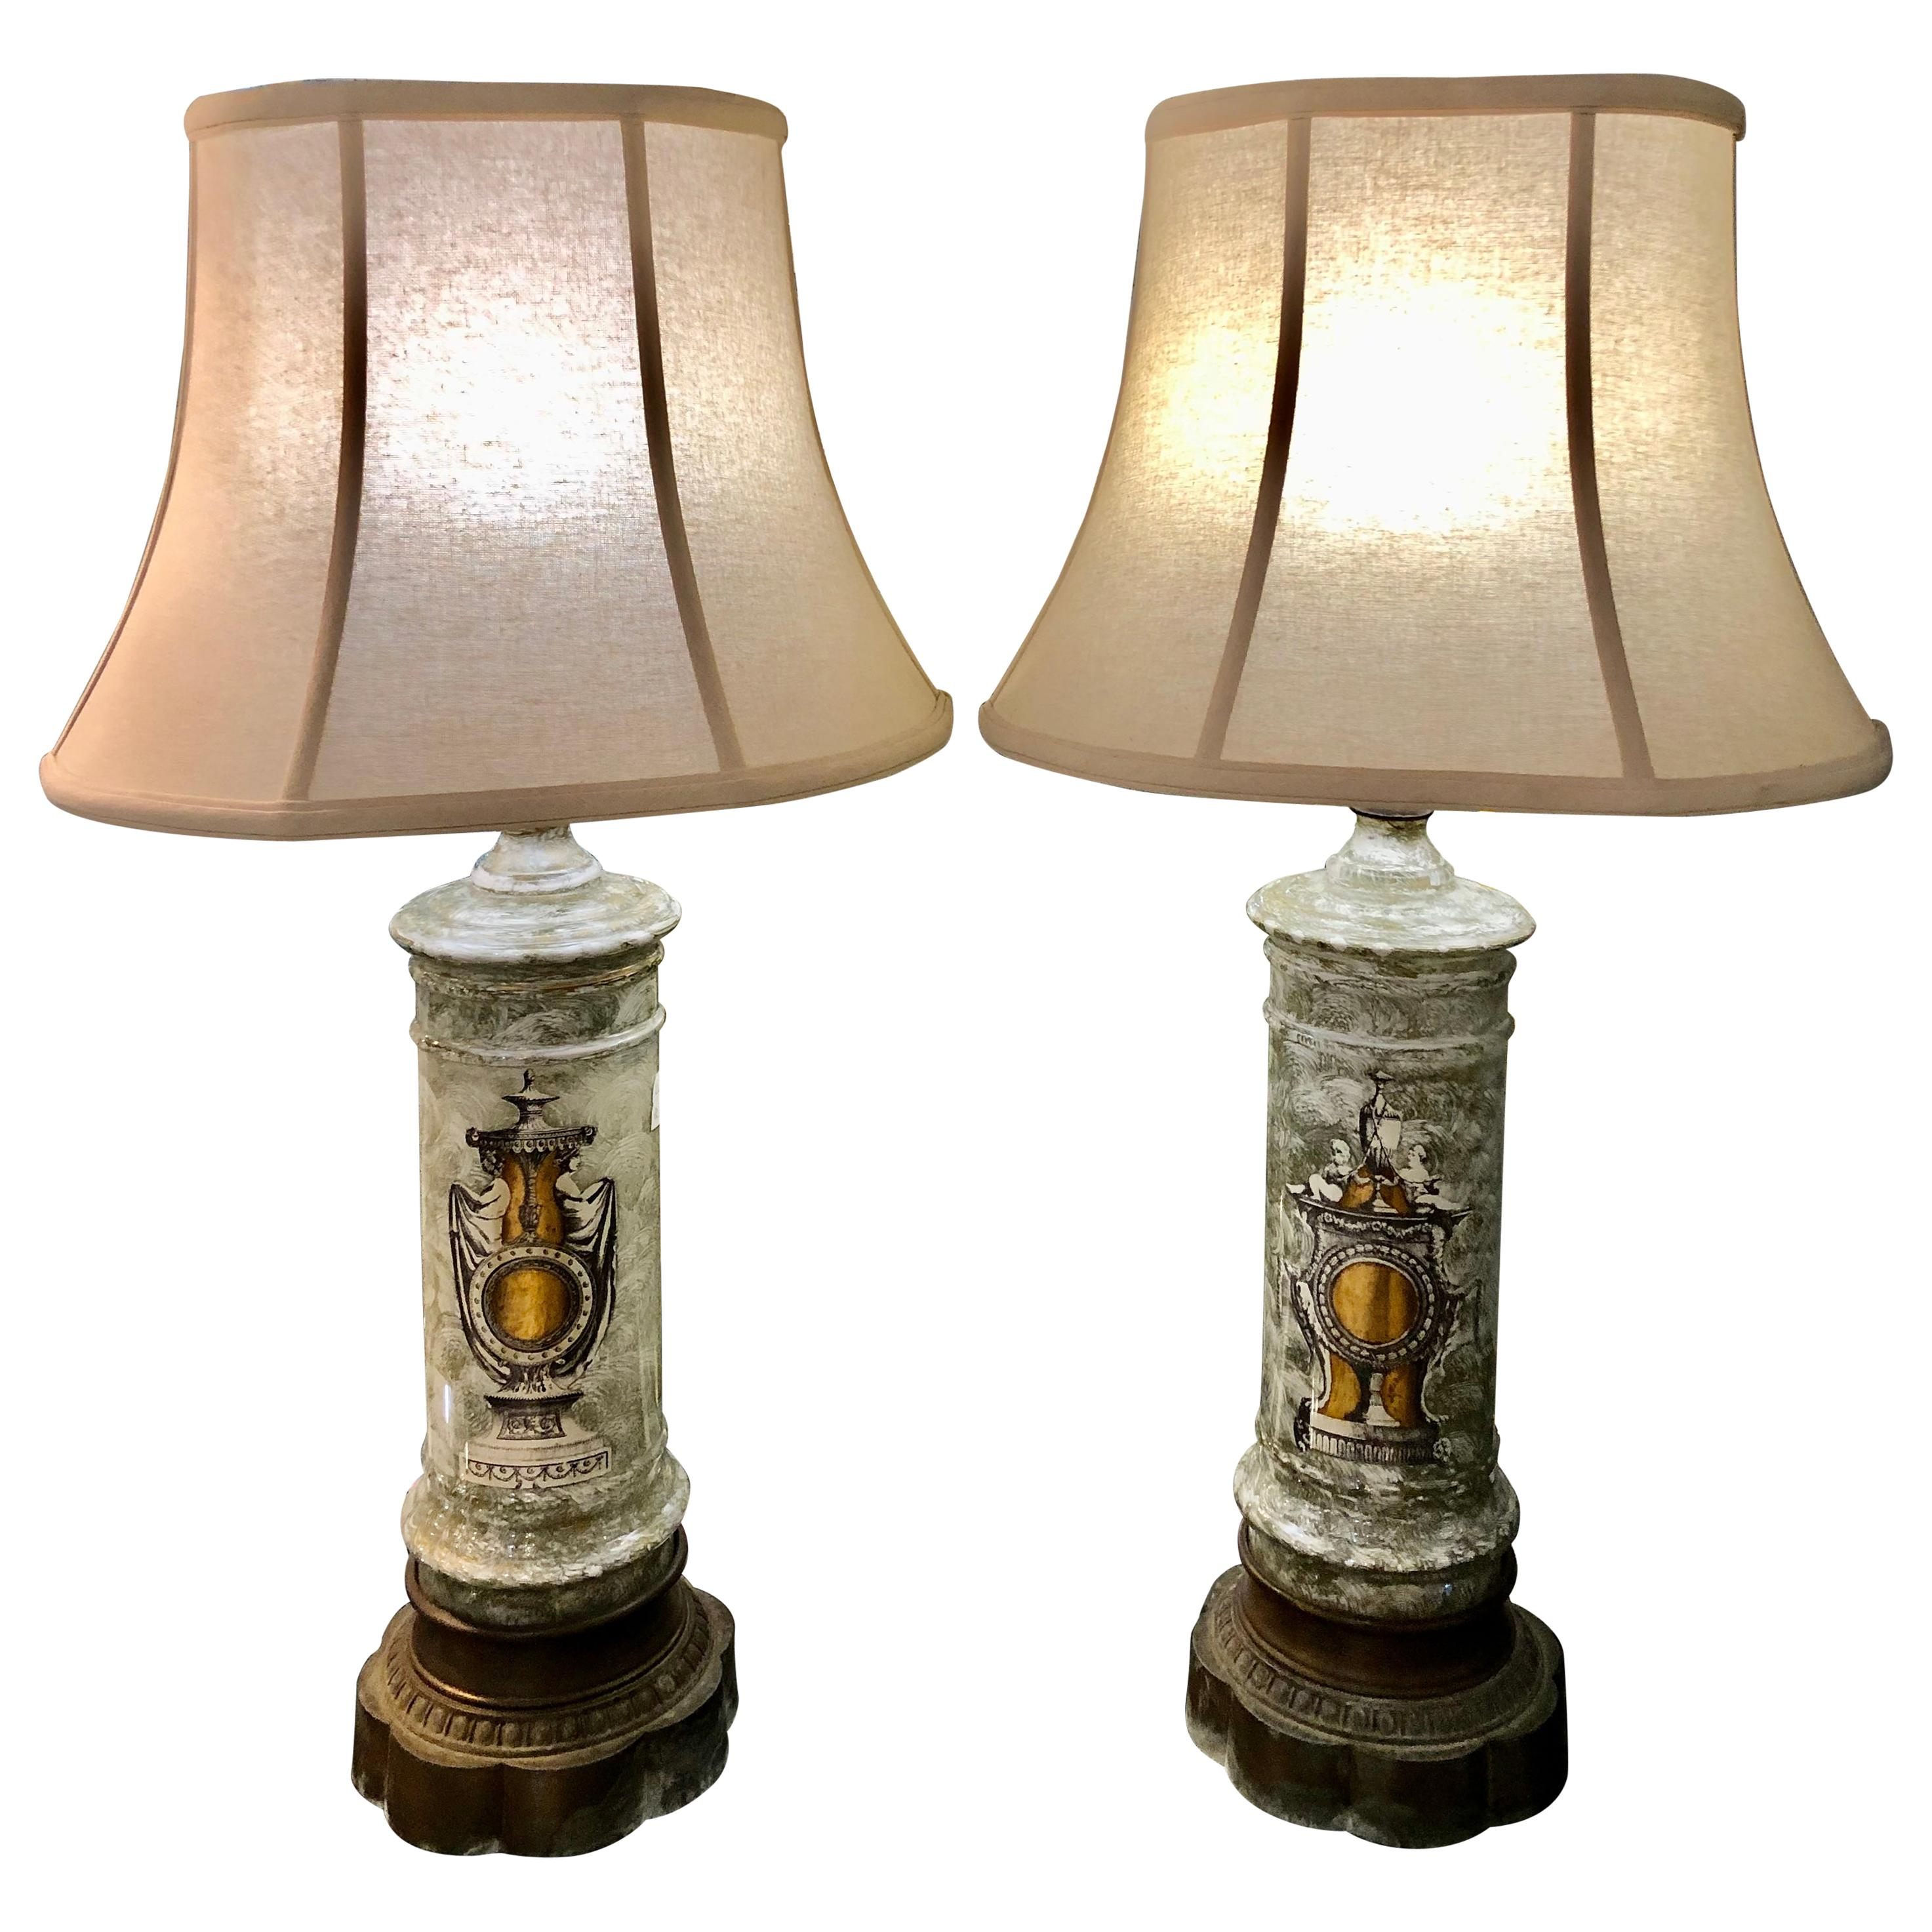 Pair of Table Lamps Painted Decoupage Decorative Glass Hollywood Regency Era